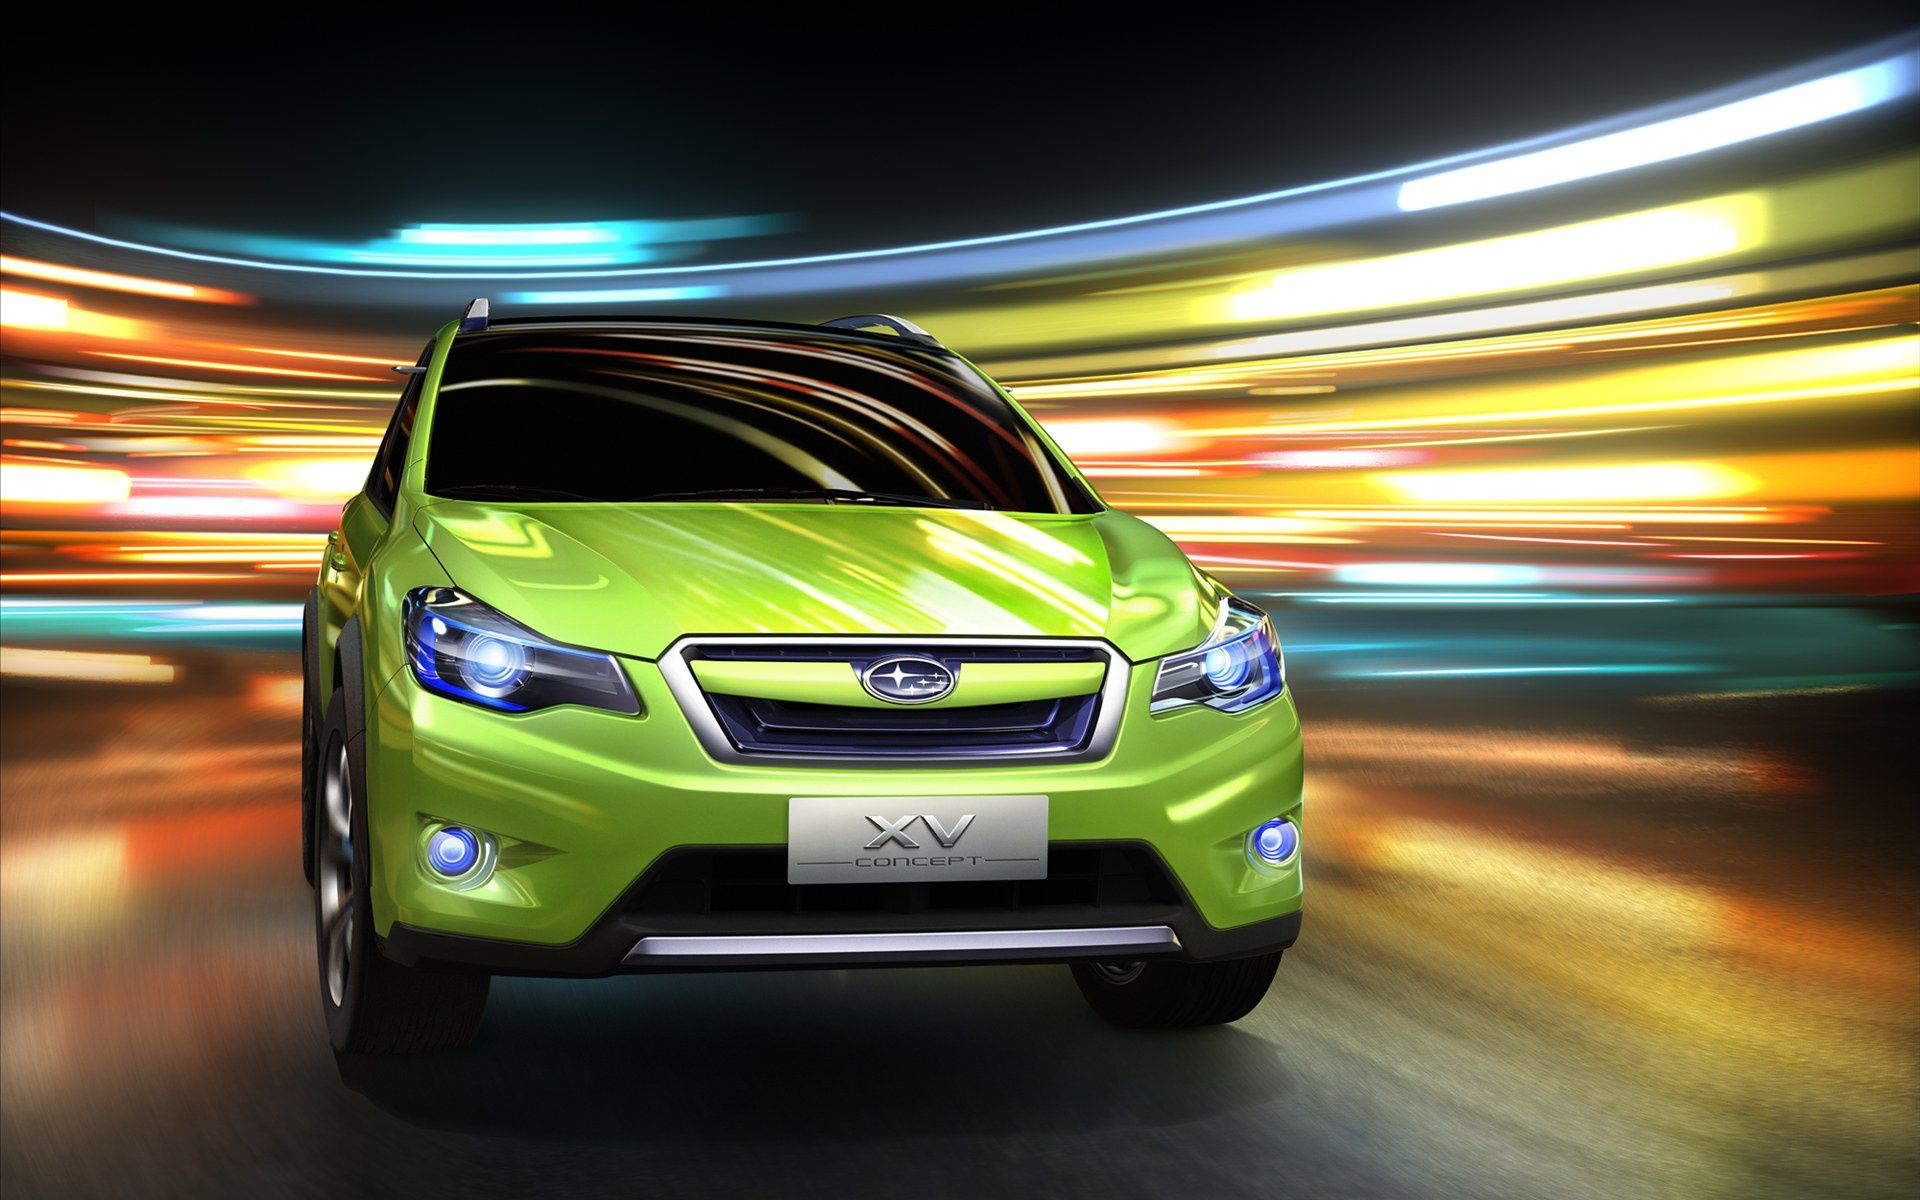 2016 subaru crosstrek release date there is no better time for the 2016 subaru crosstrek to dispatch it is normal that this hybrid suv is going to get